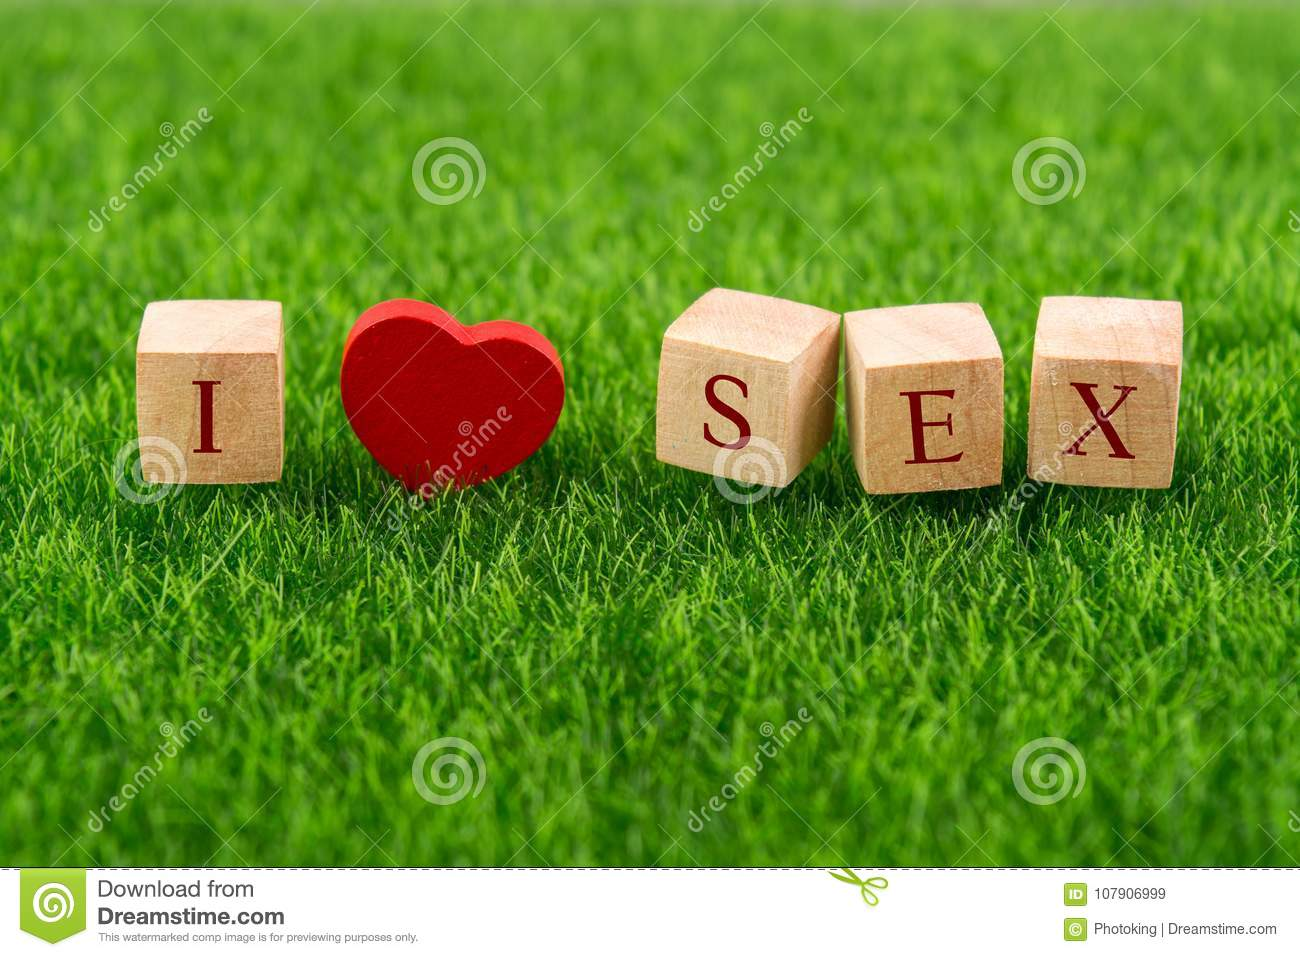 I love sex in wooden cube